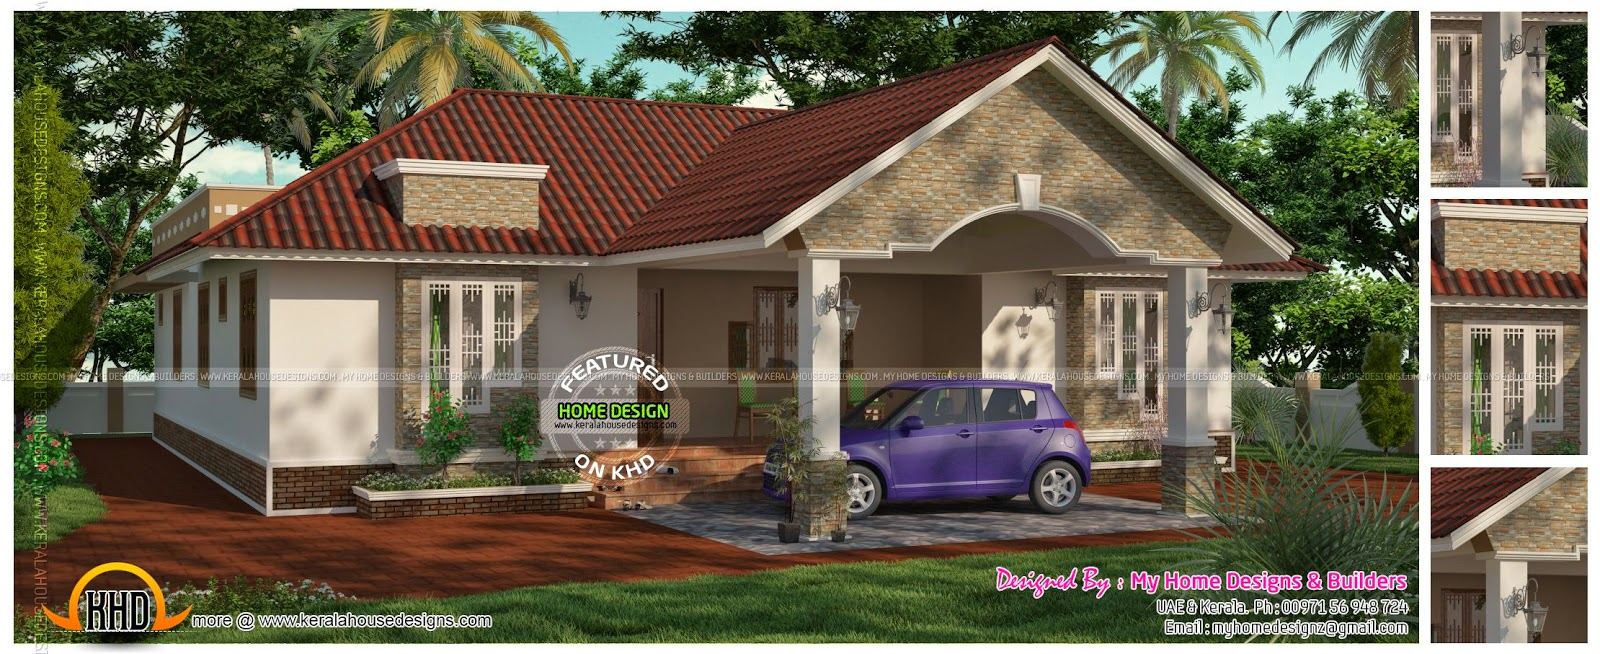 3 bedroom 2 attached one floor house kerala home design 2 floor house